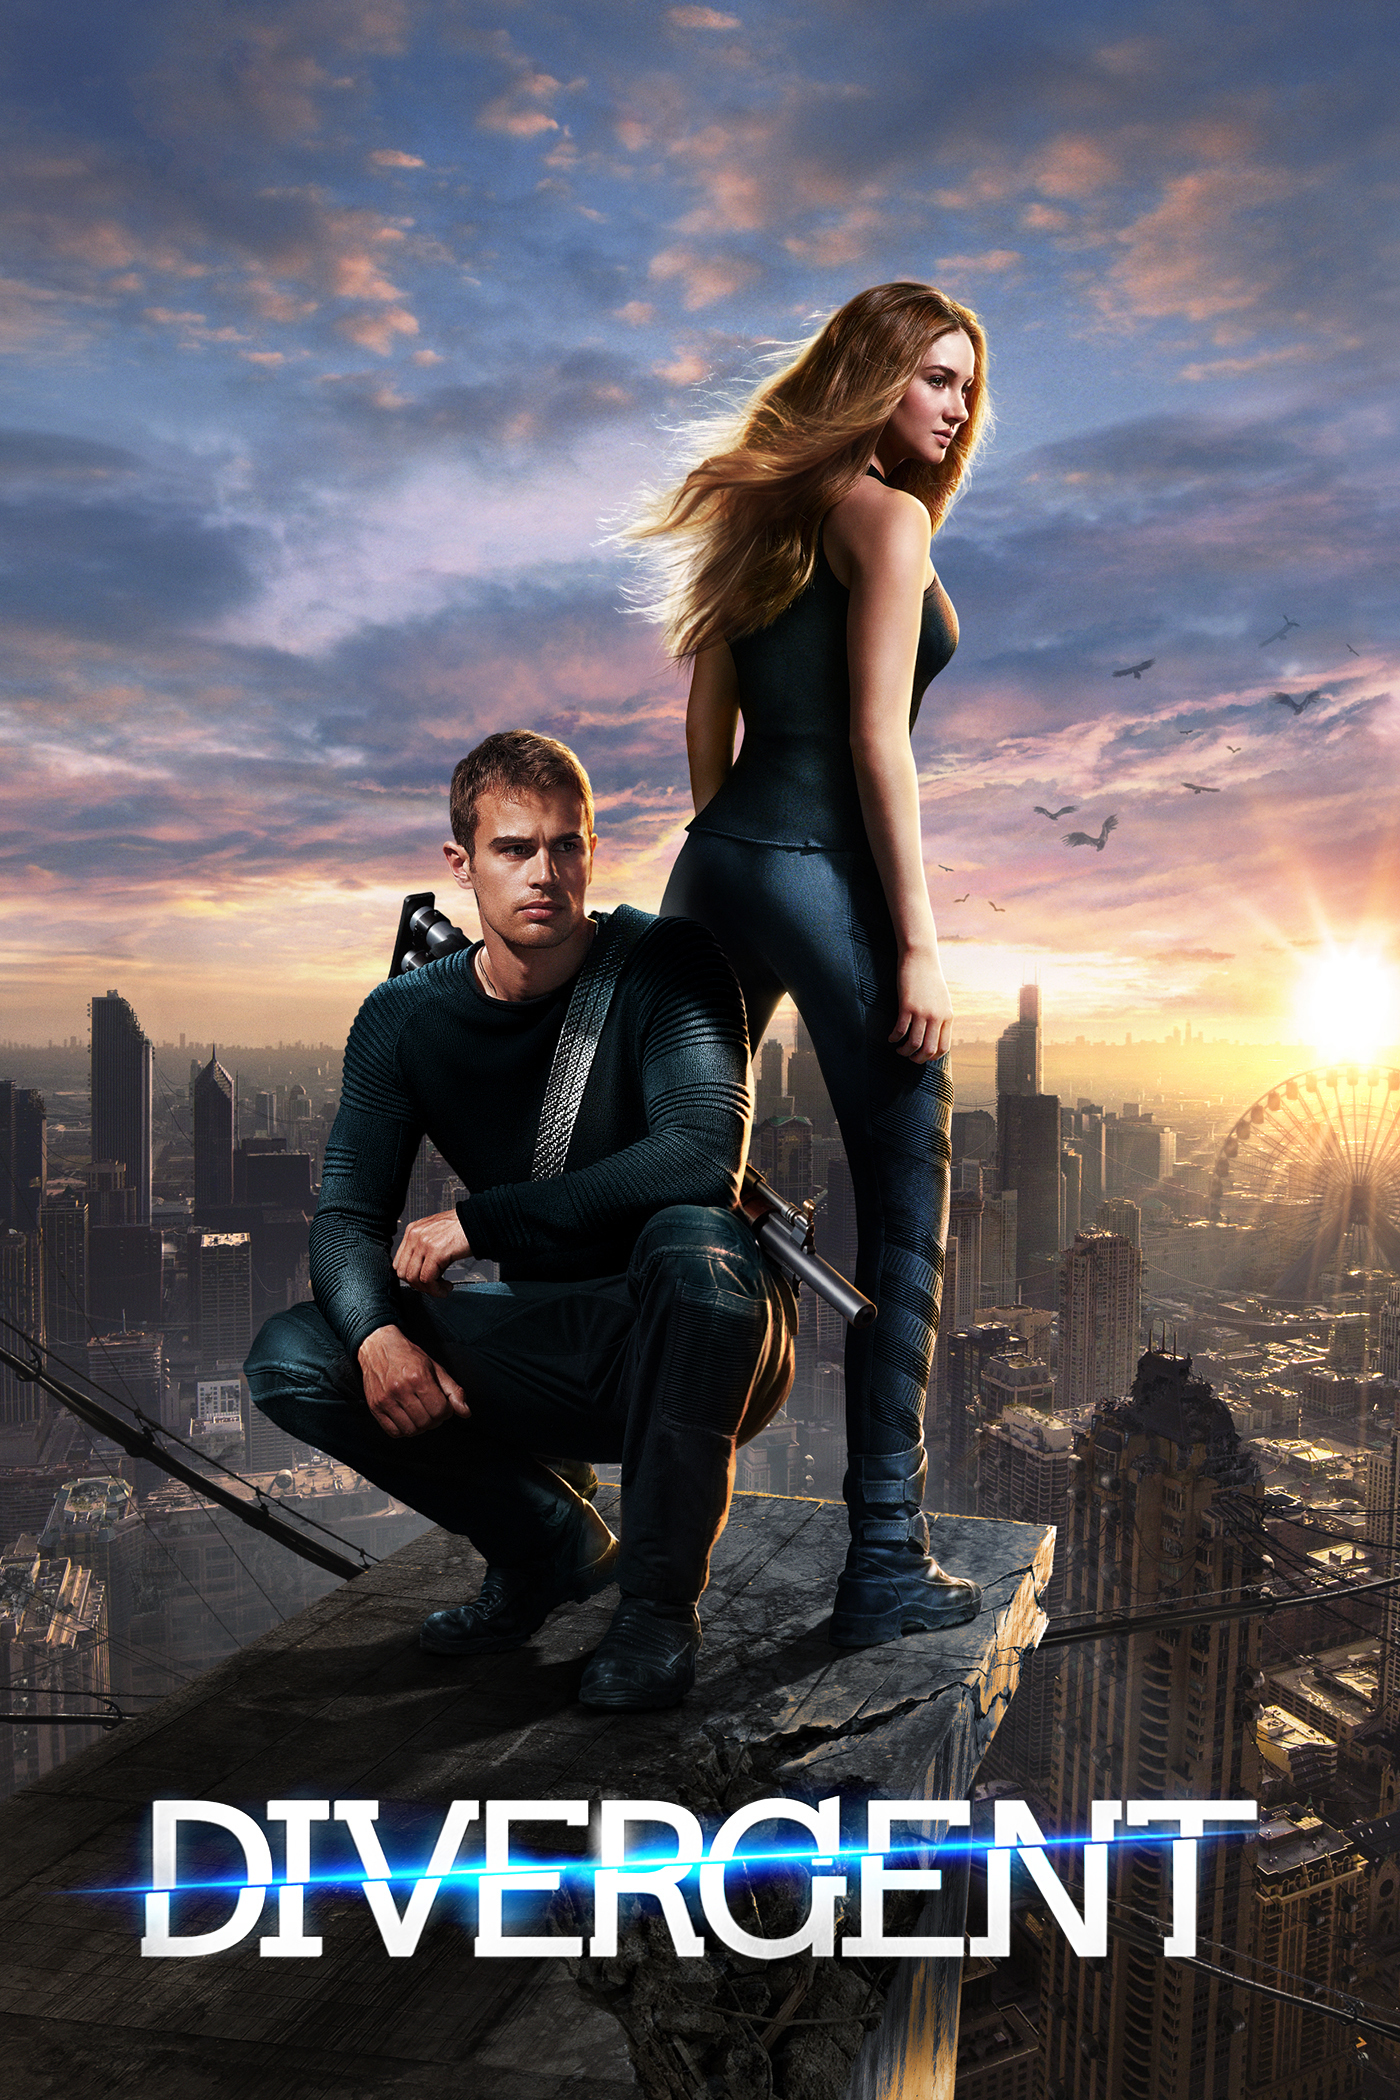 Divergent: Fairly mediocre movie for the younger audience